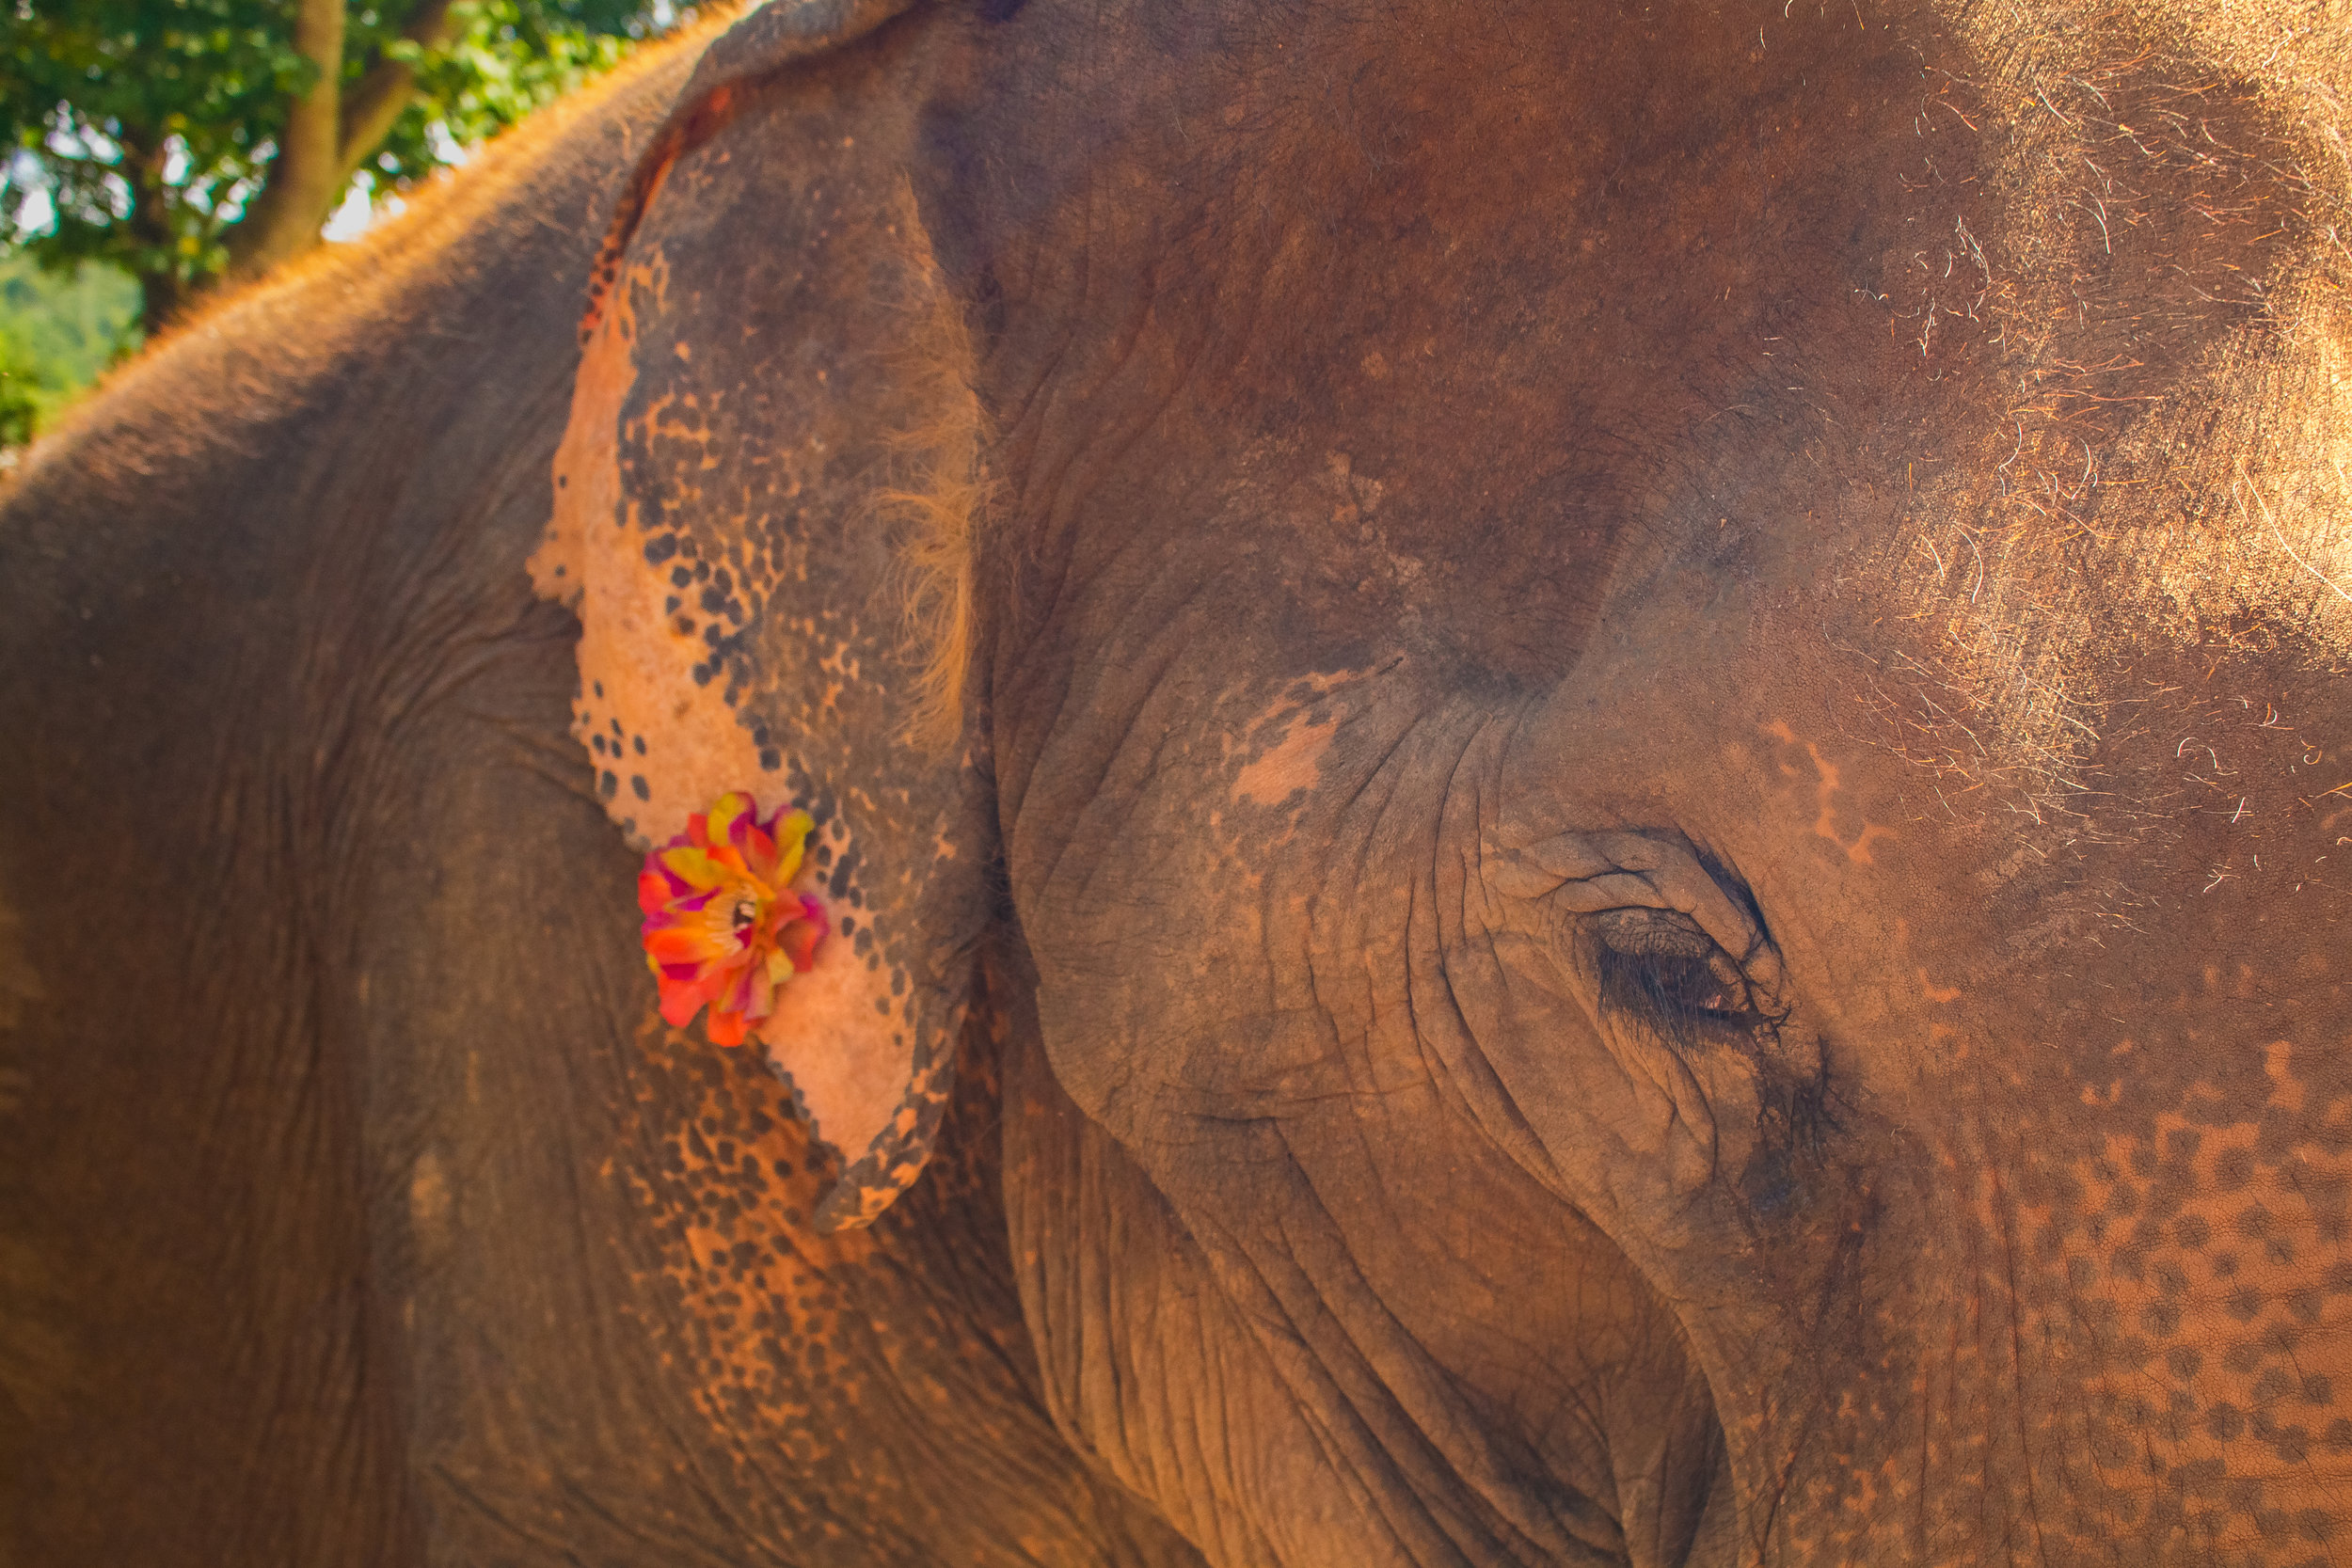 Flower decorated on an ear of a rescued elephant at Elephant Sanctuary Park, Chiang Mai, Thailand.